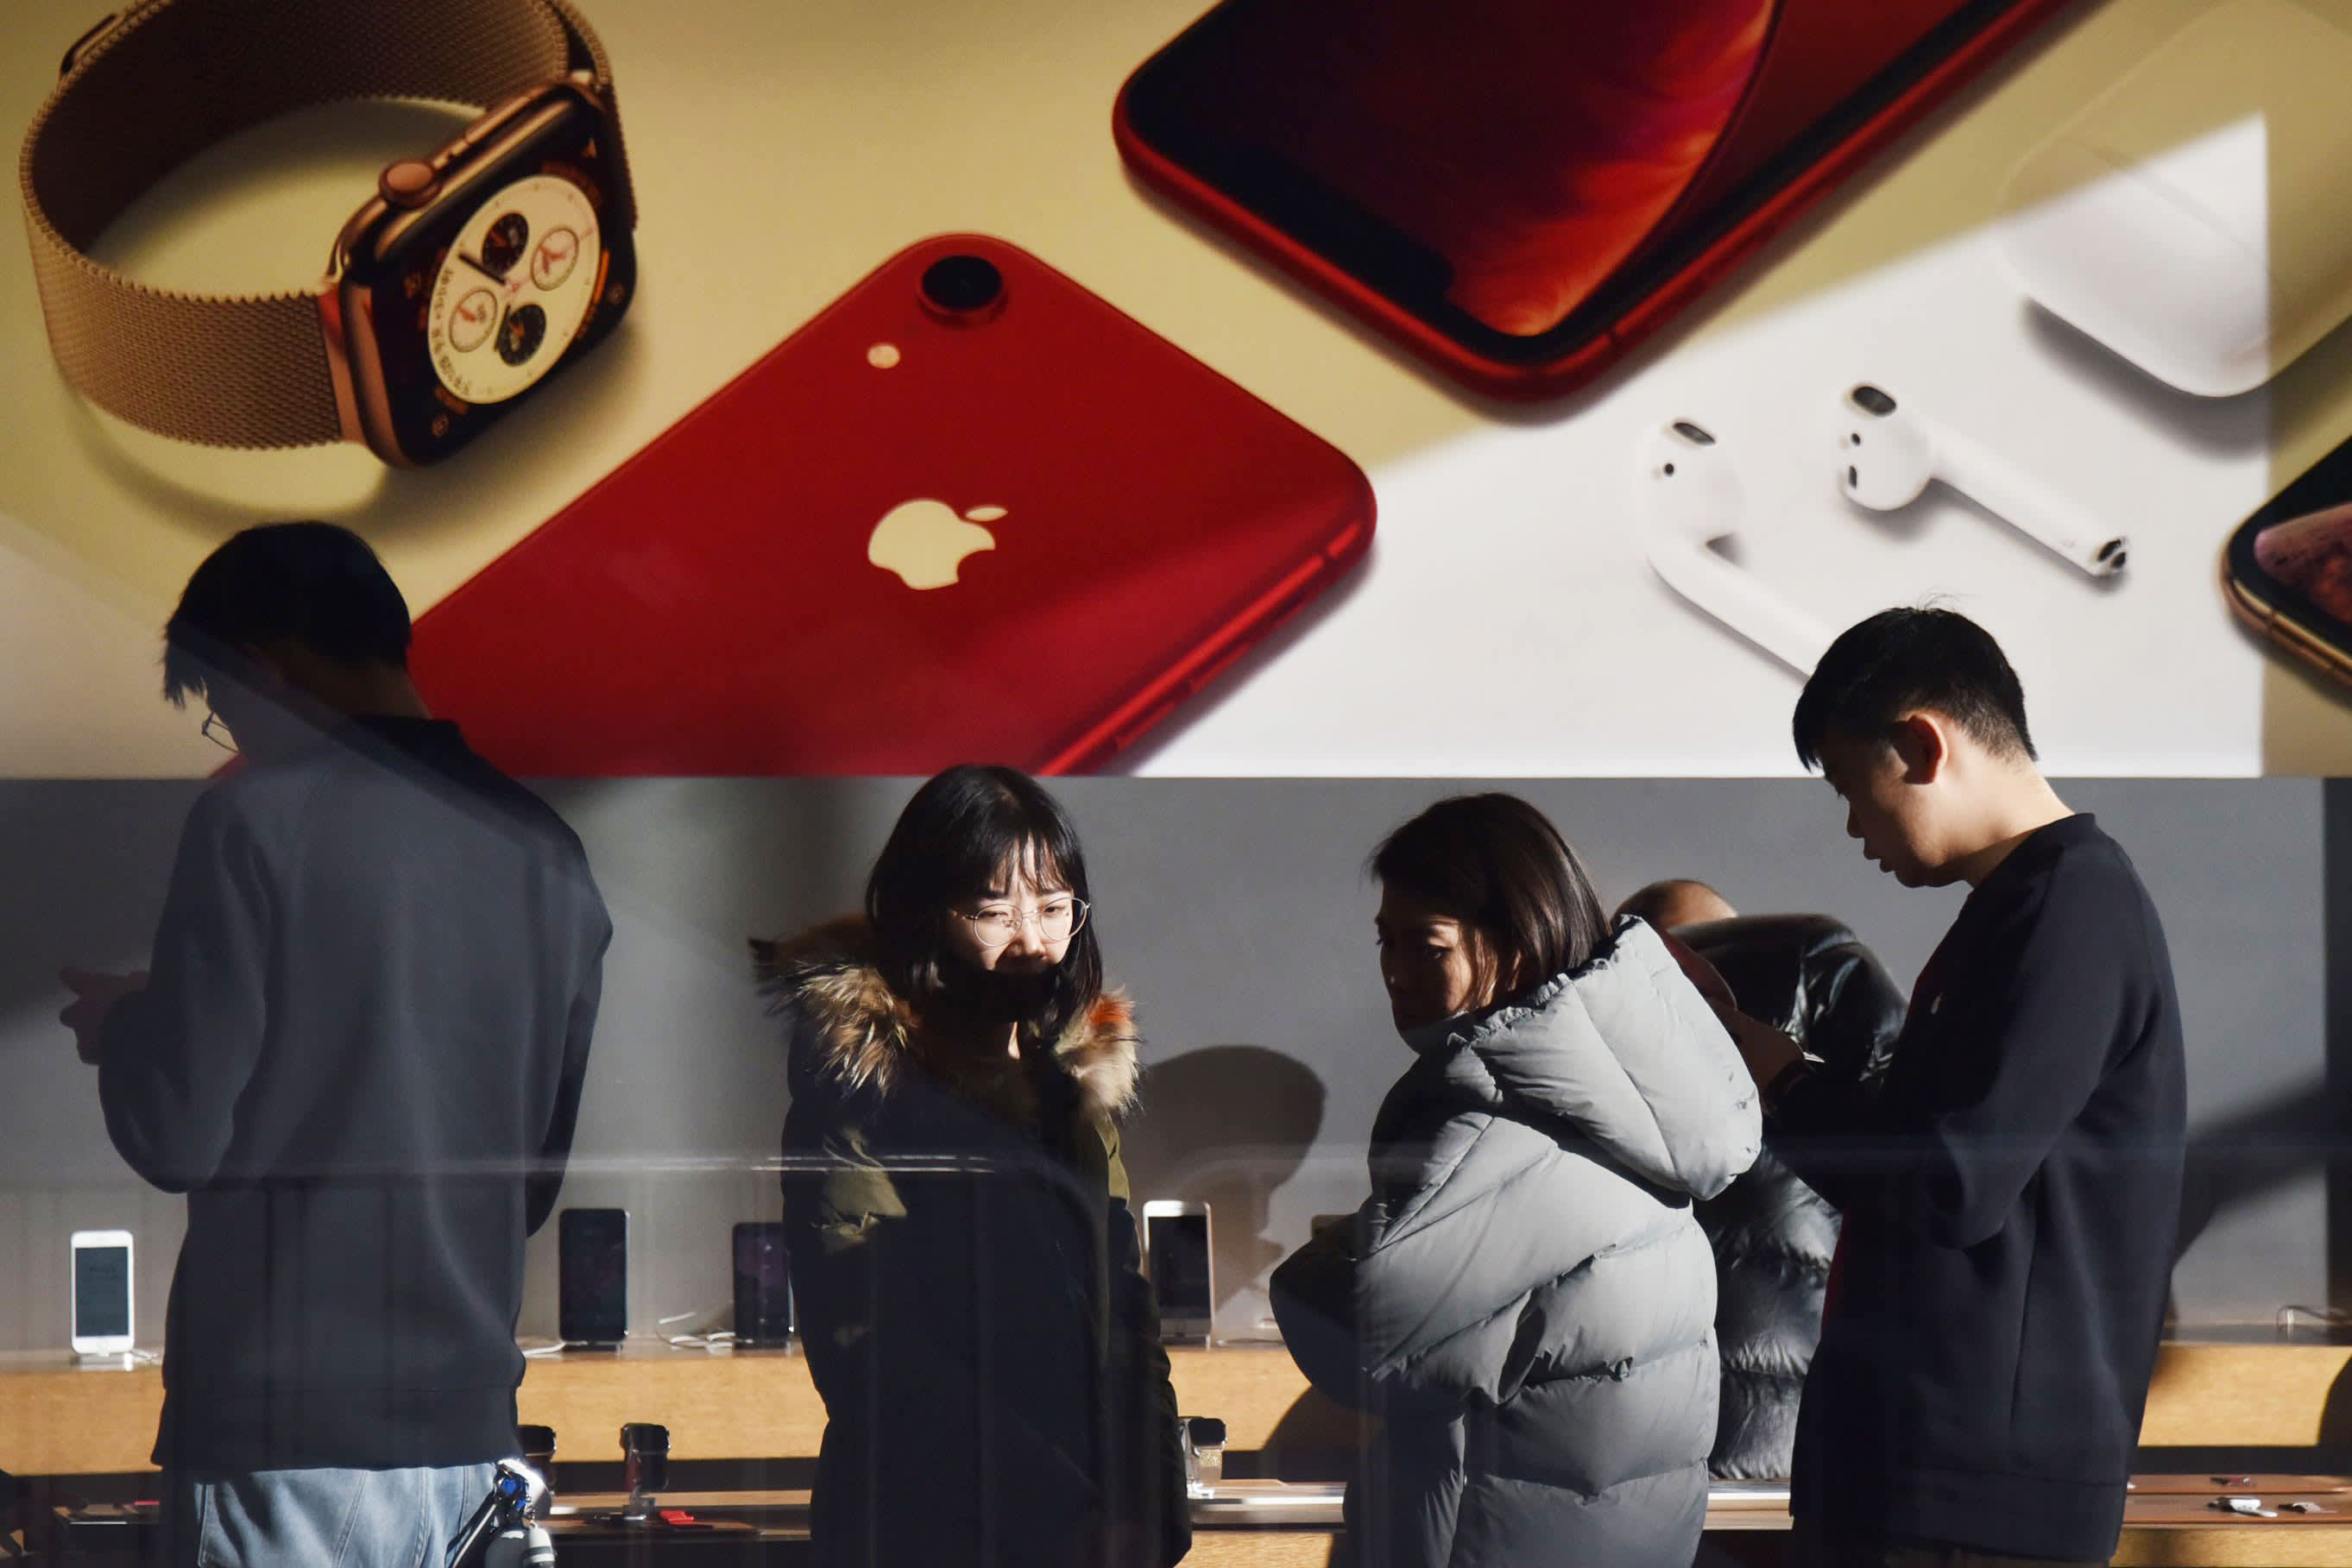 Customers look at products in an Apple store in Beijing on December 11, 2018.